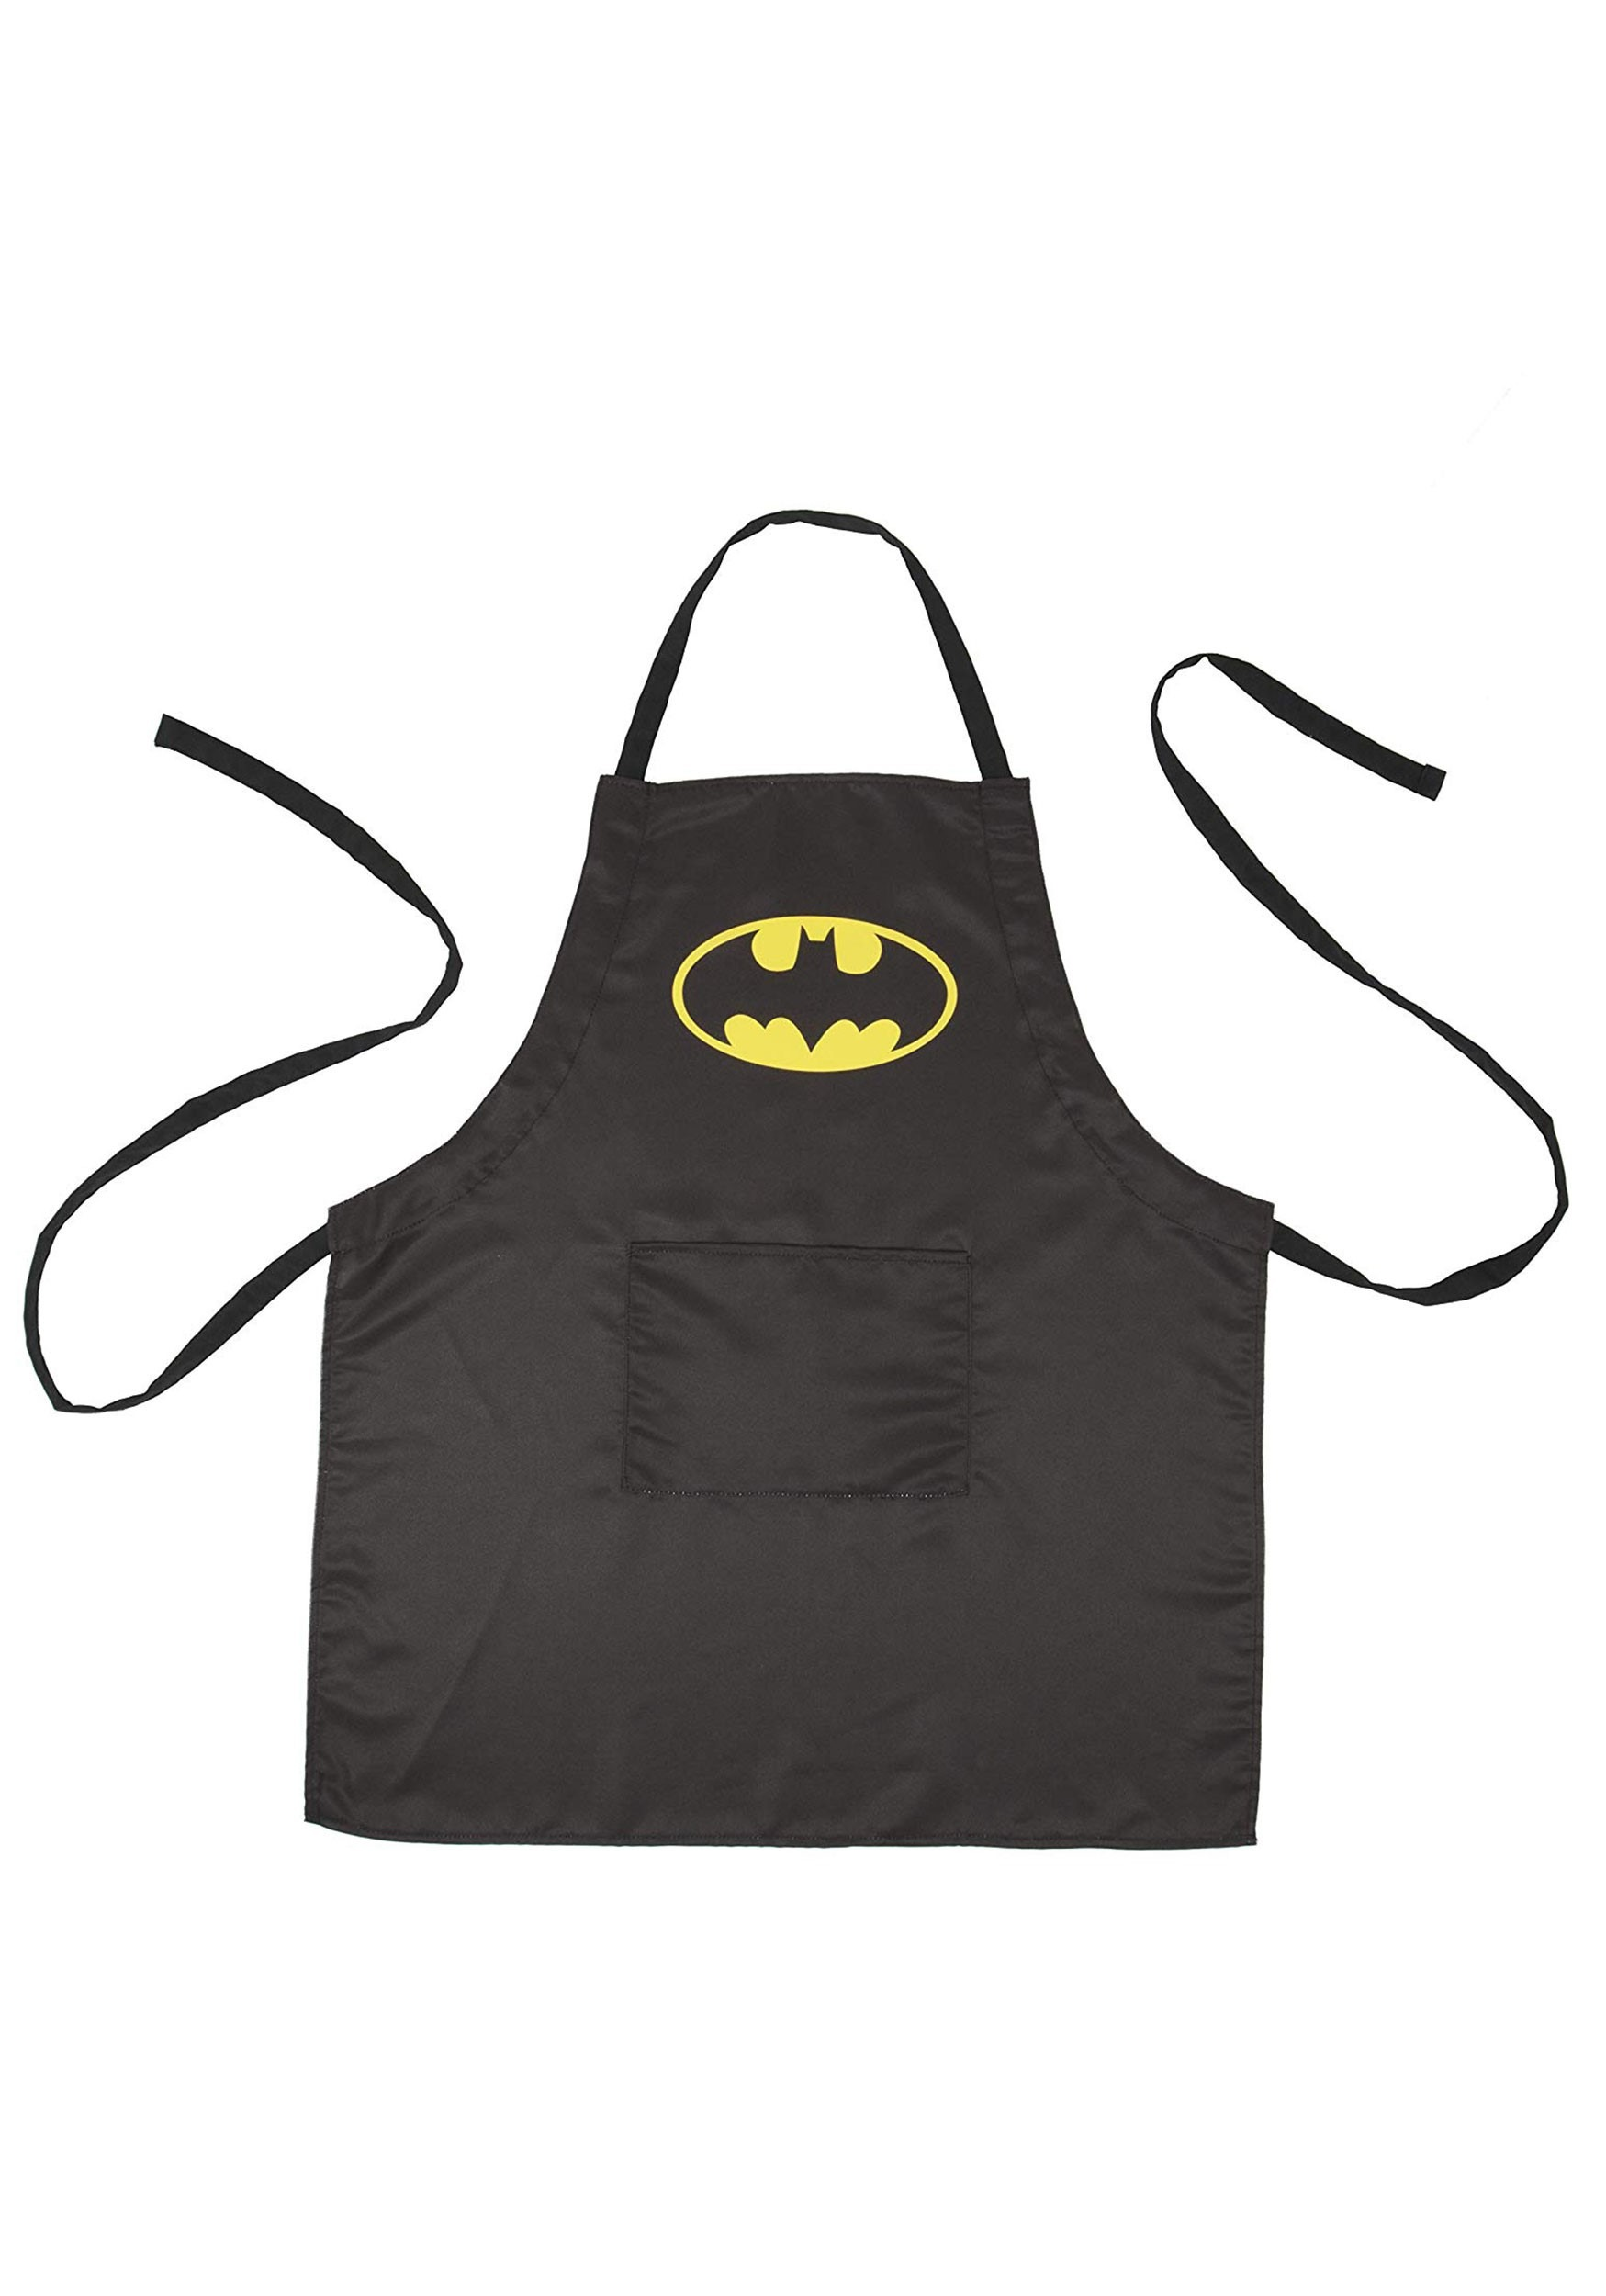 DC Comics Batman Logo Apron.